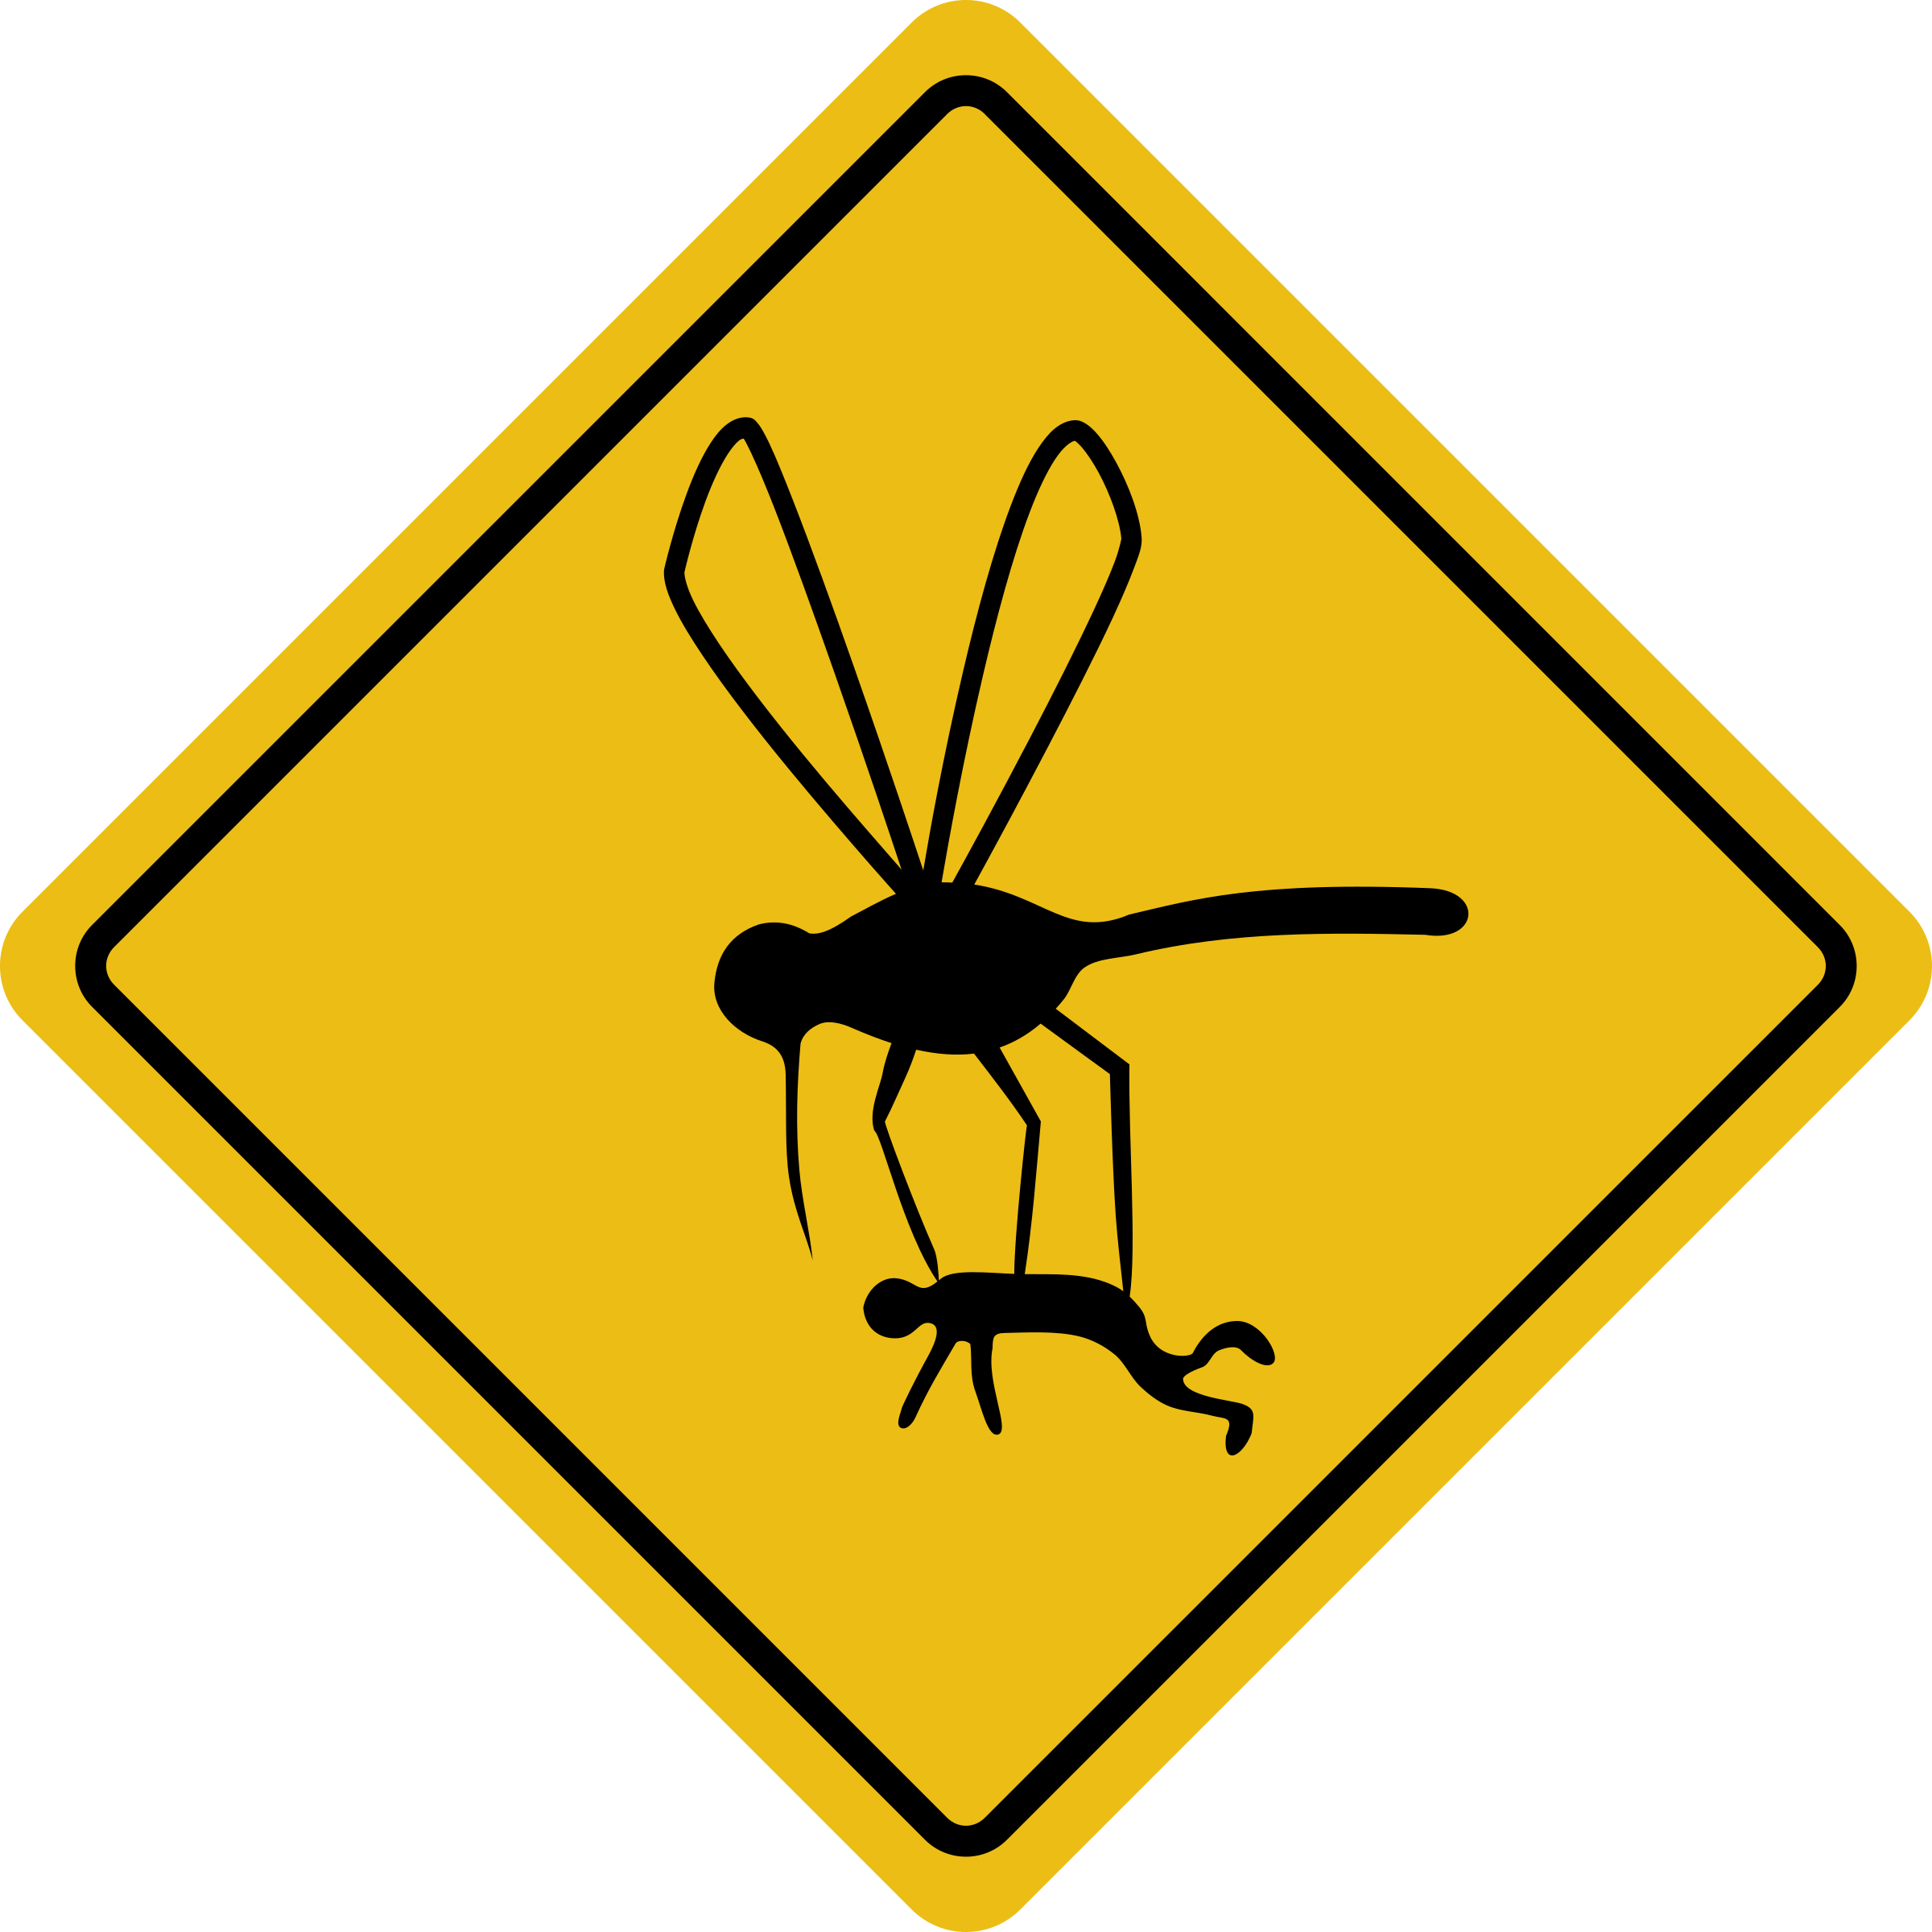 Mosquito hazard by rones